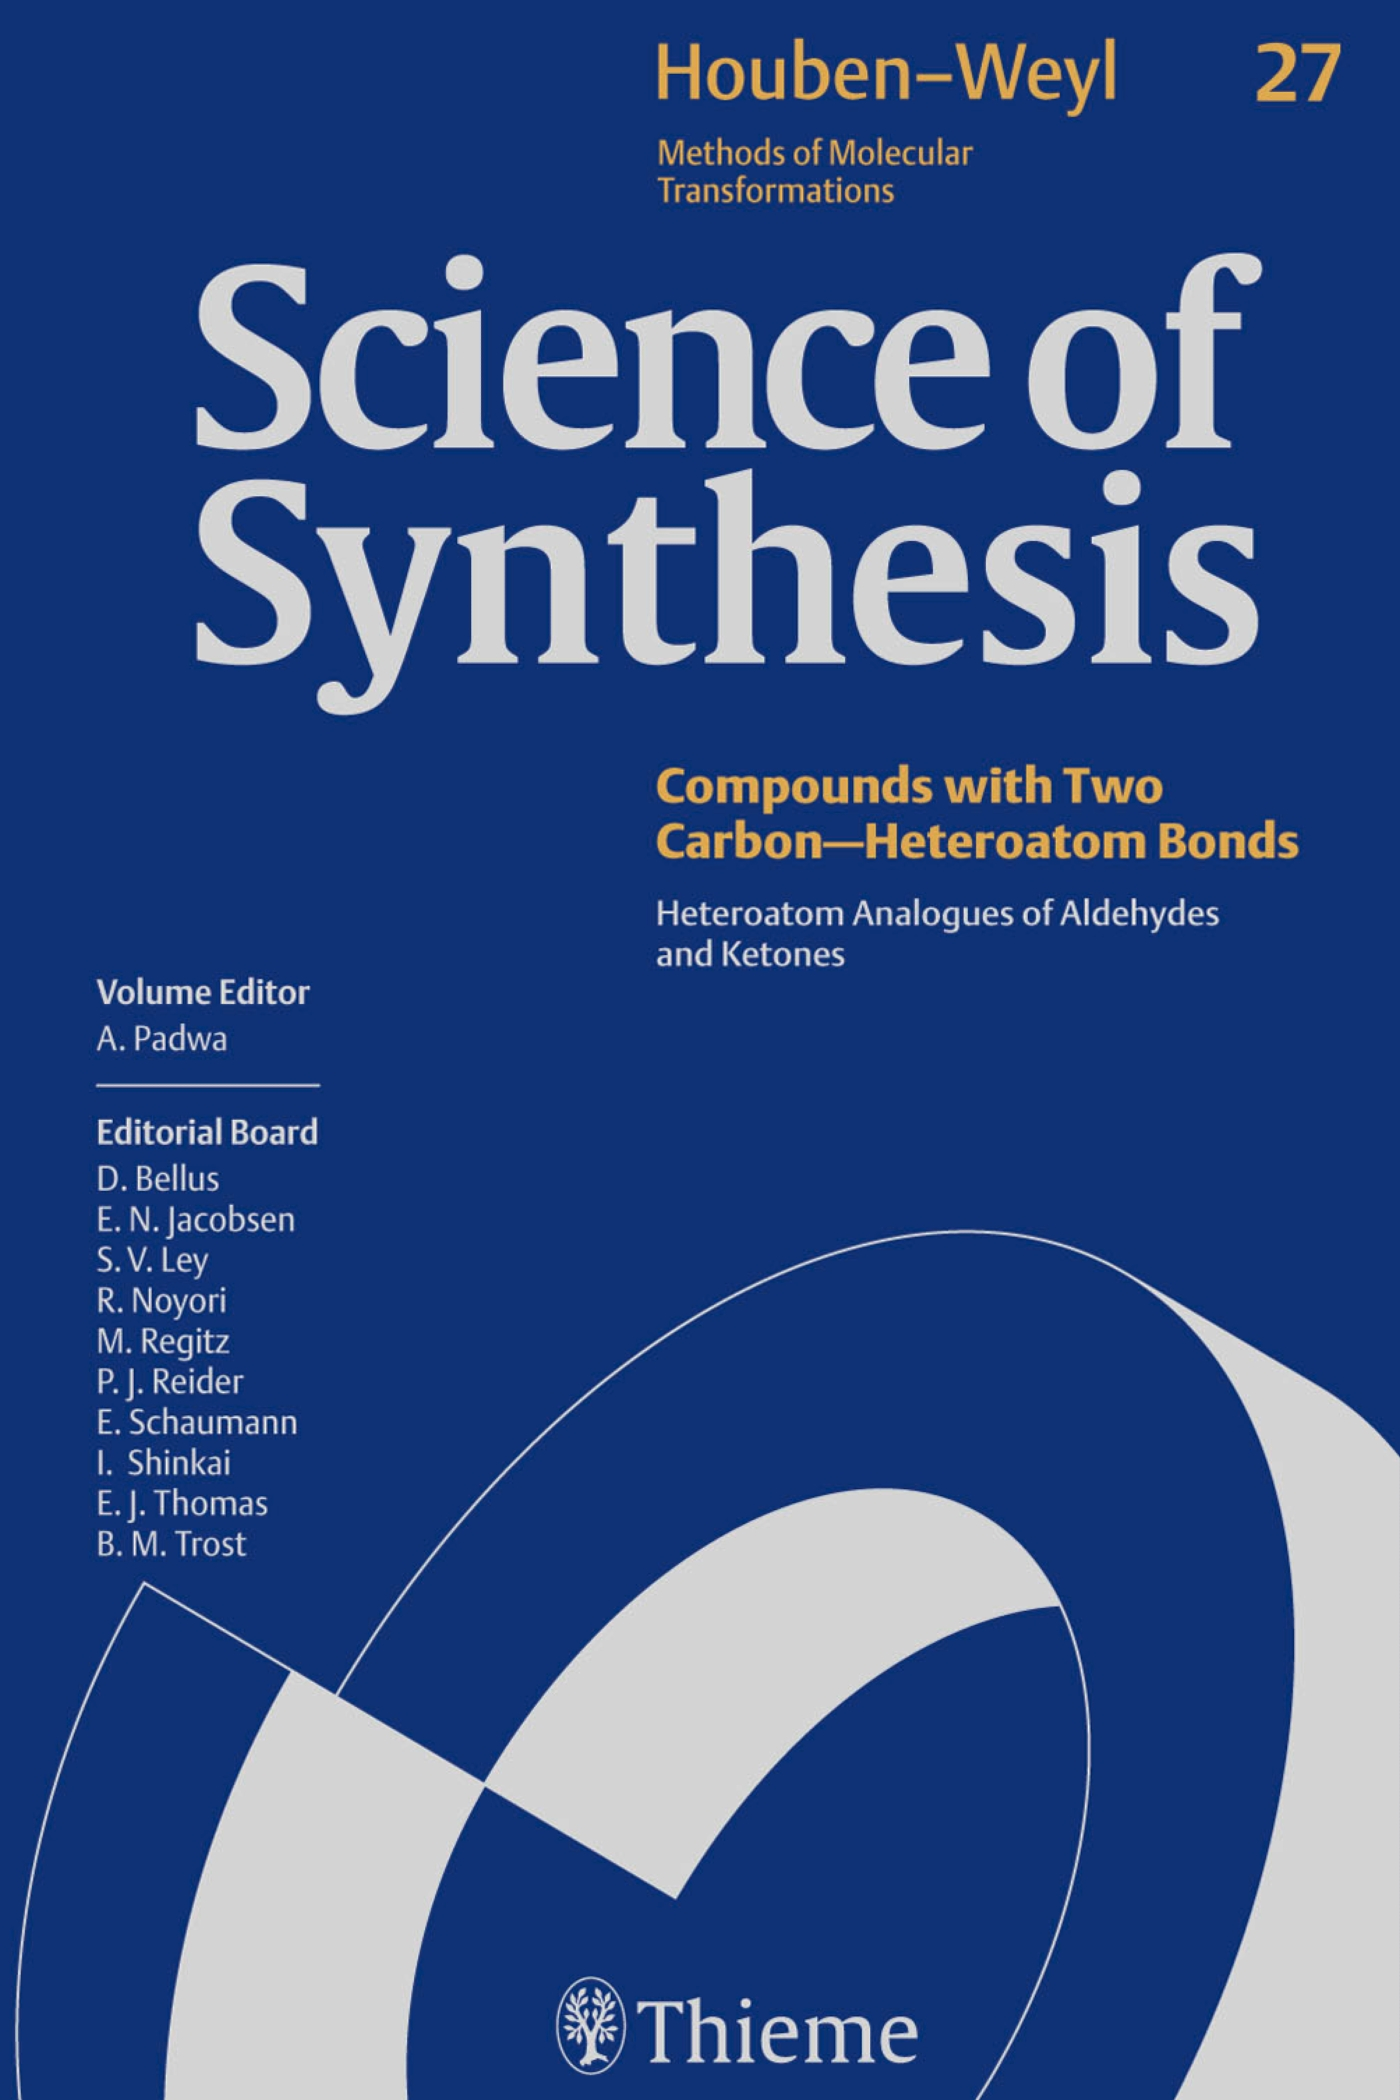 Science of Synthesis: Houben-Weyl Methods of Molecular Transformations  Vol. 27